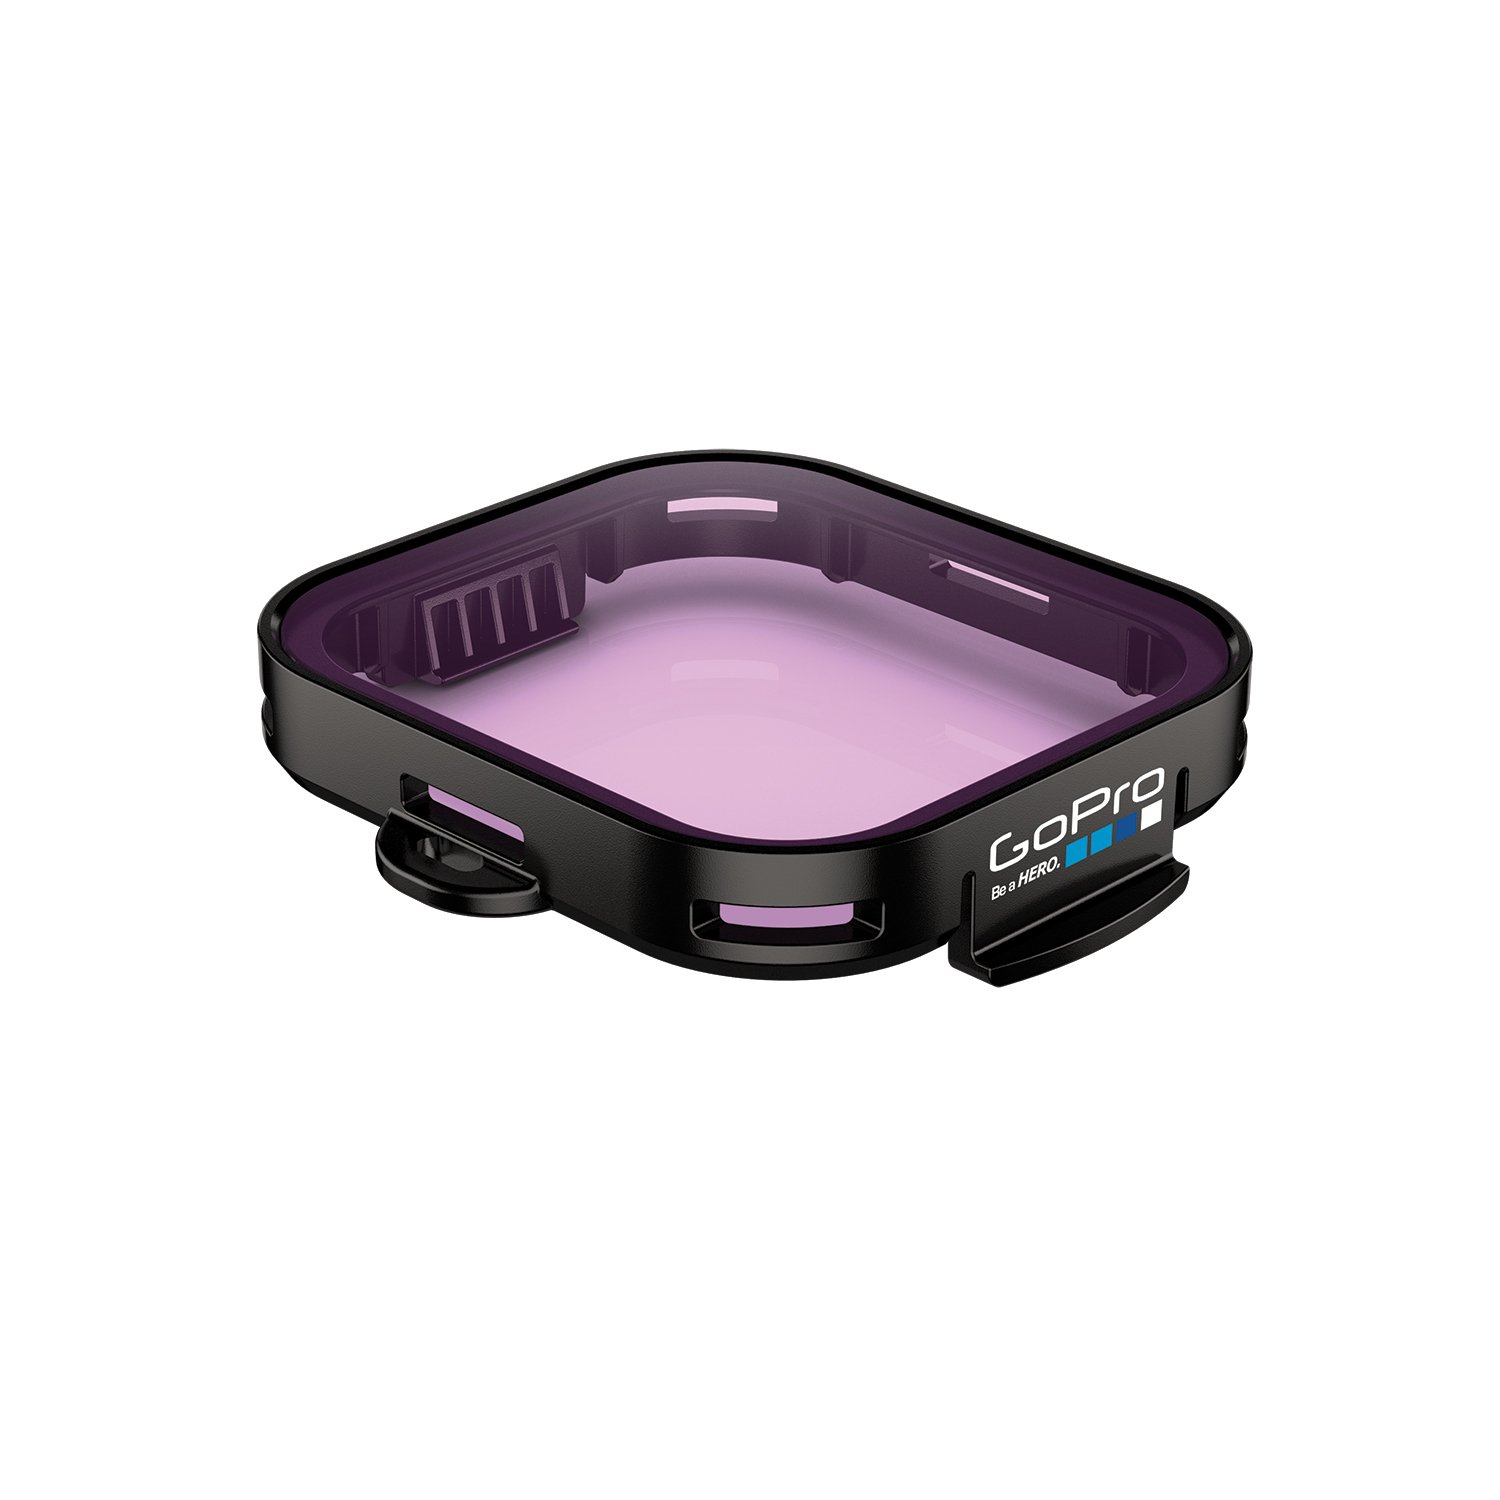 GoProDive Filter for Dive Housing (Magenta) платье baon цвет синий b457054 larkspur размер m 46